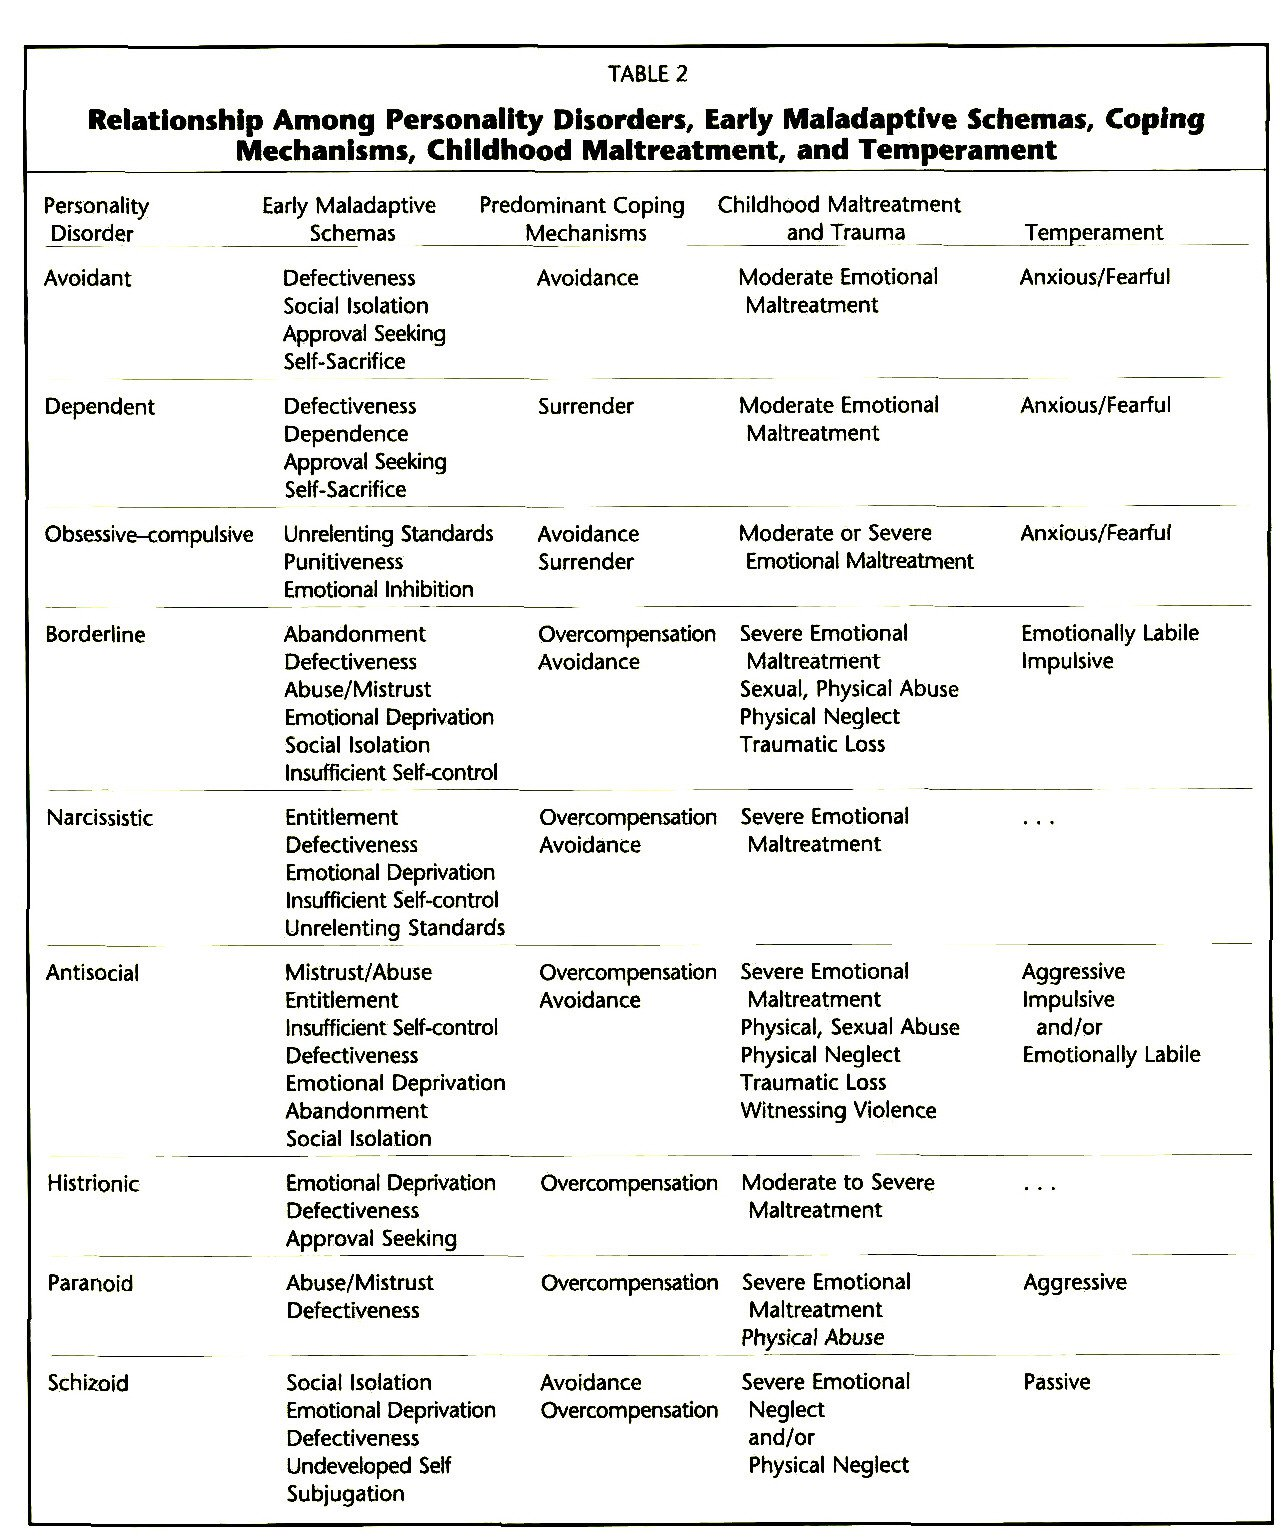 TABLE 2Relationship Among Personality Disorders, Early Maladaptlve Schemas, Coping Mechanisms, Childhood Maltreatment, and Temperament